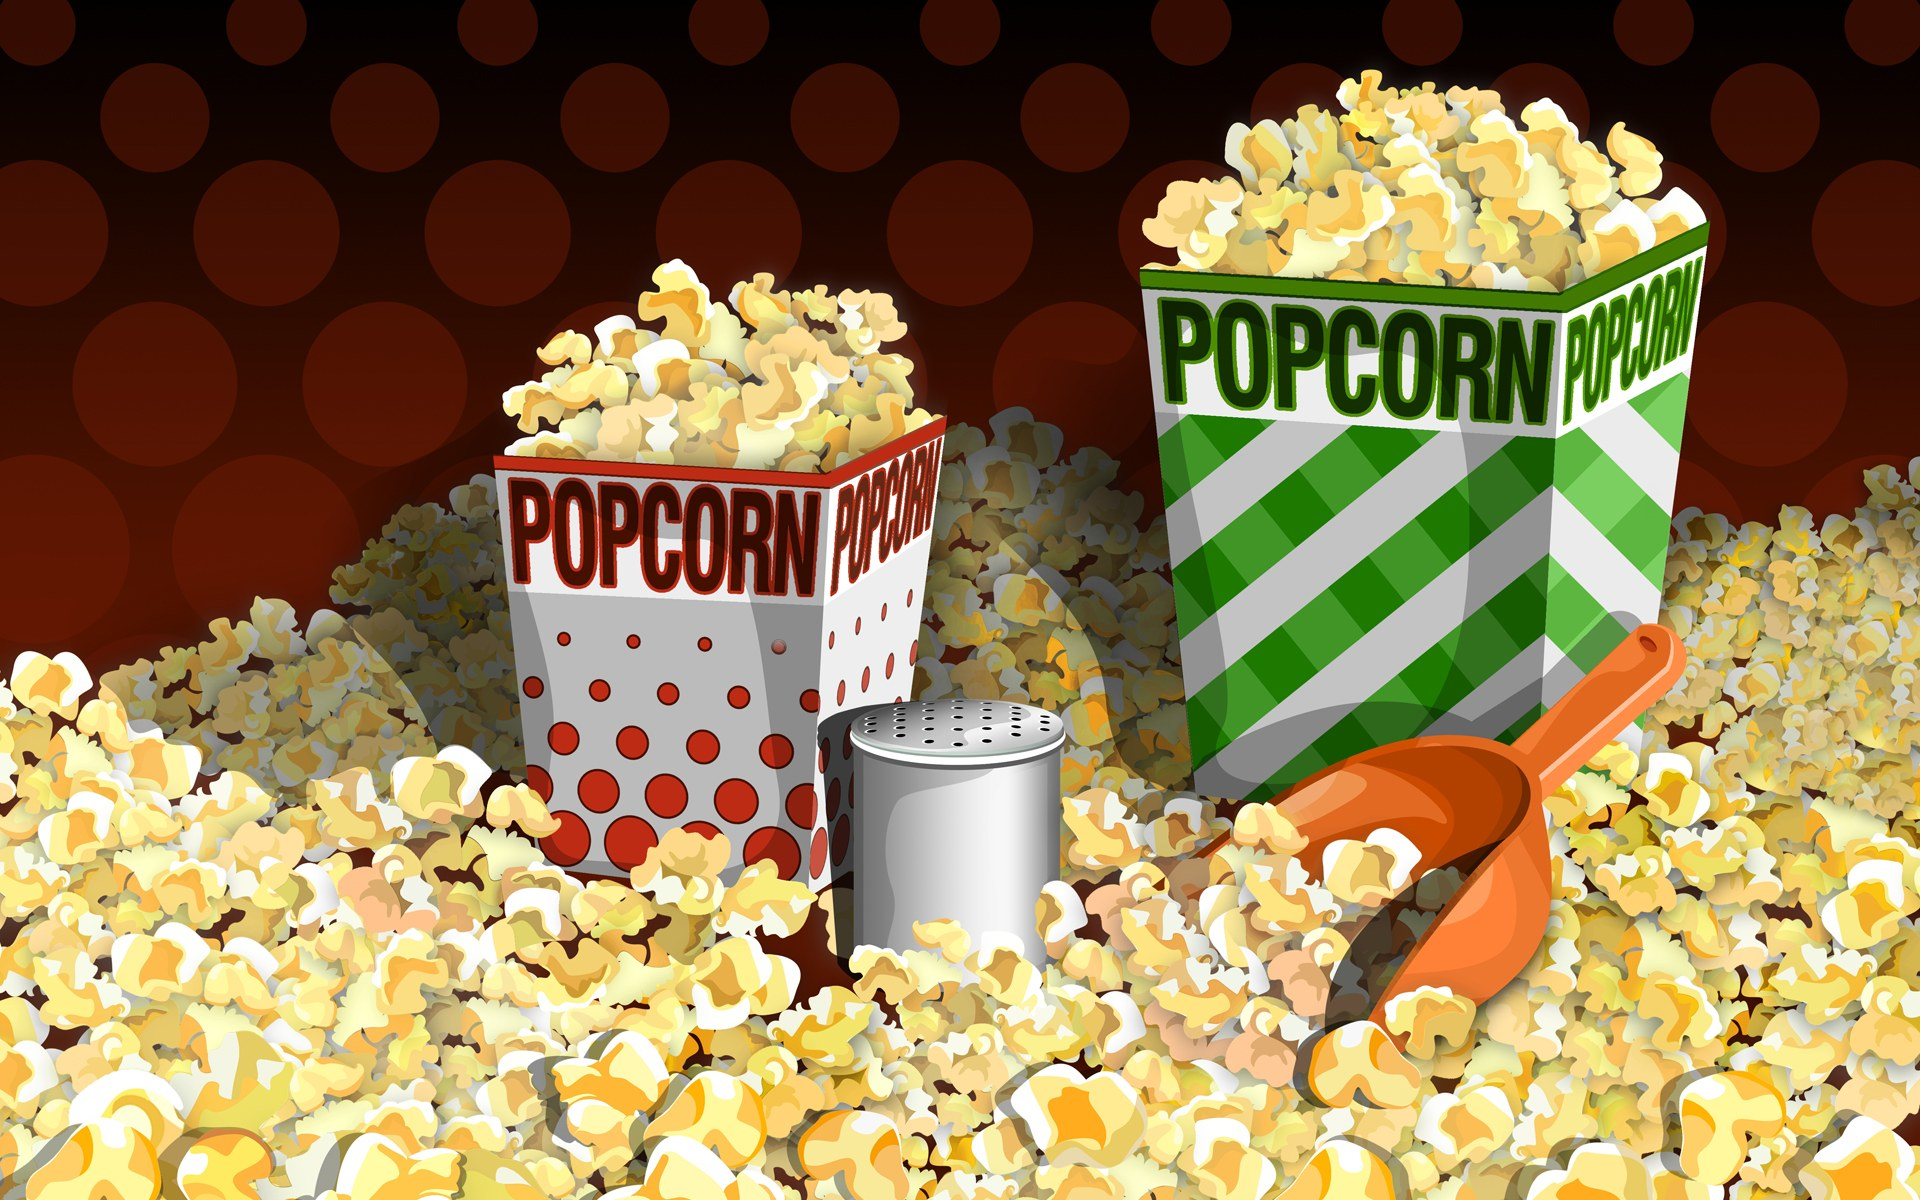 HD Wallpapers PSD Food illustrations 3123 popcorn illustration popcorn picture